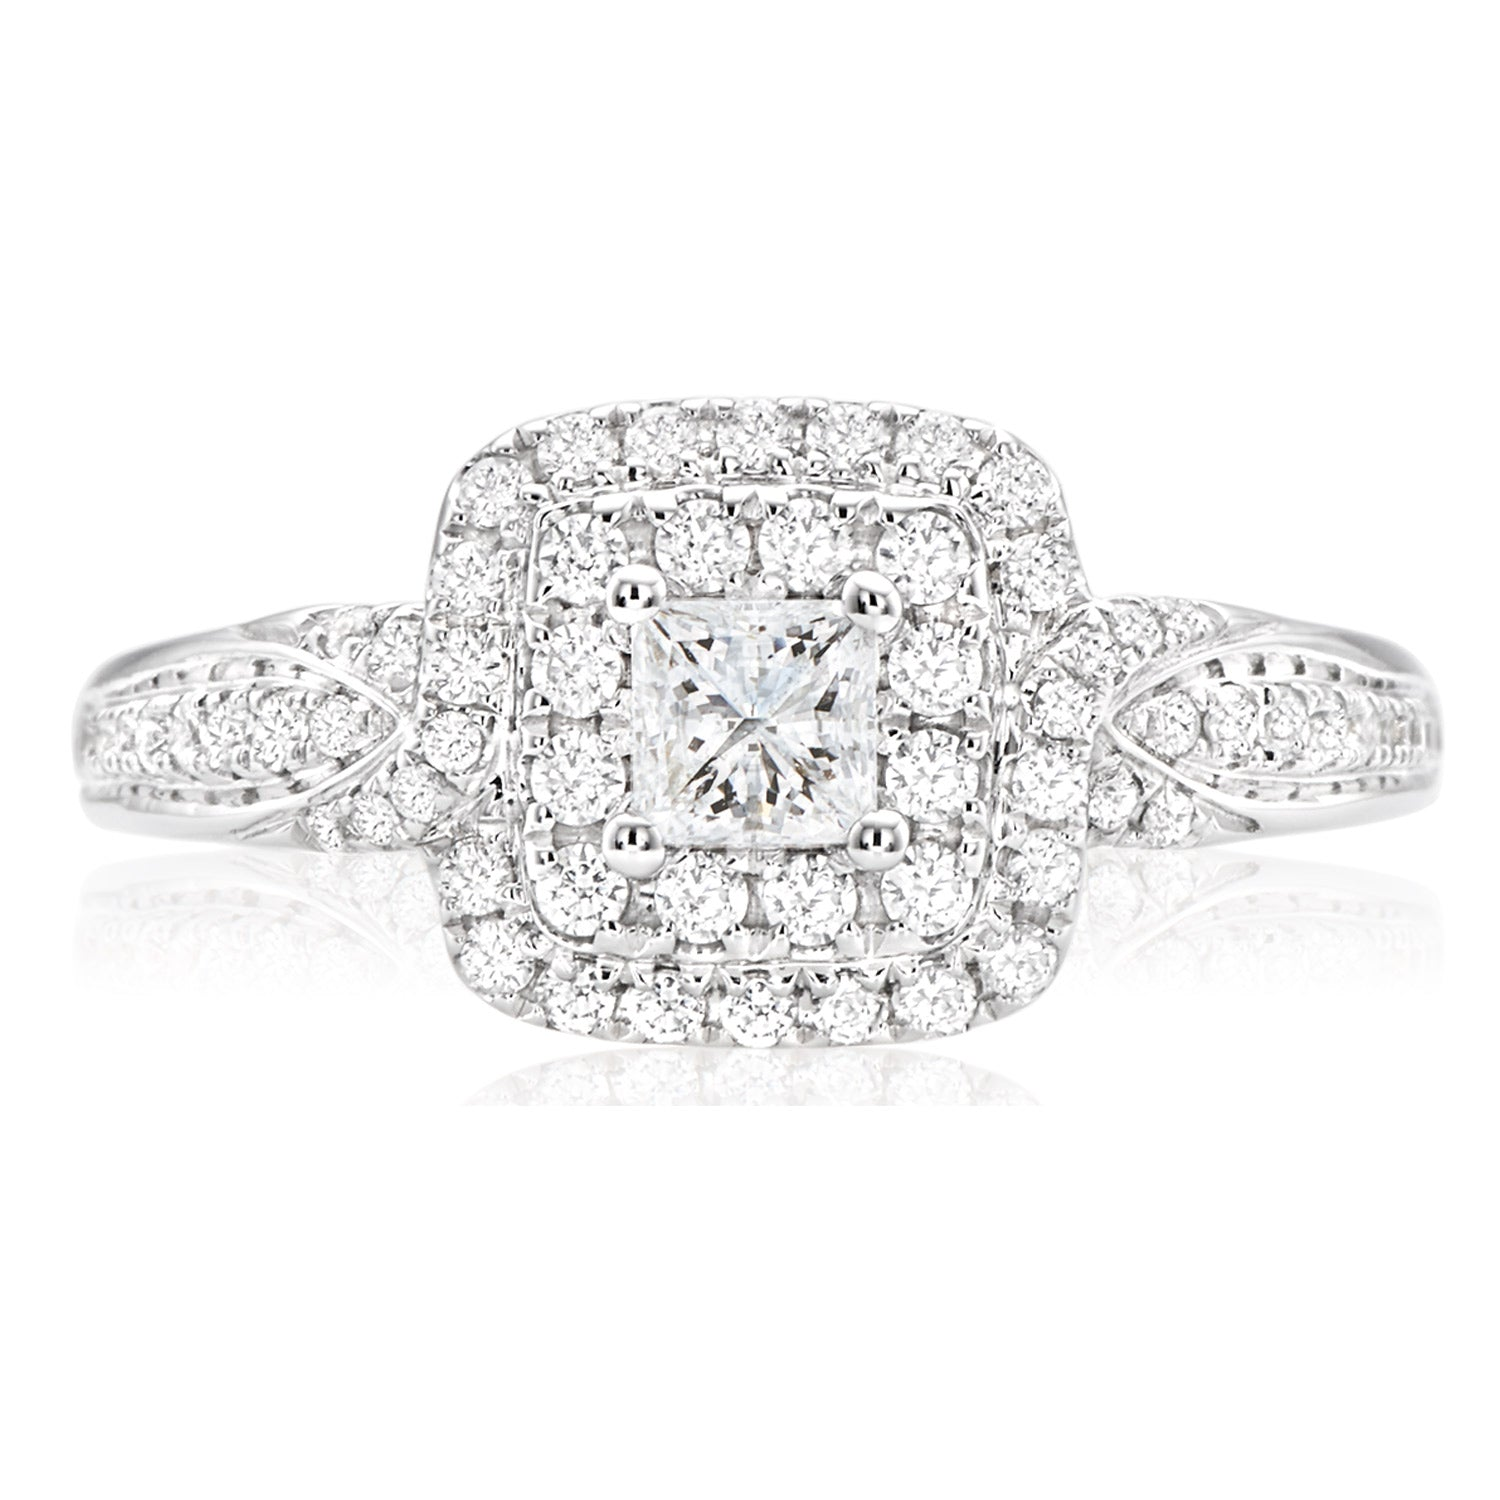 Vera Wang Love 18ct White Gold Princess & Round Brilliant Cut with 0.74 CARAT tw of Diamonds